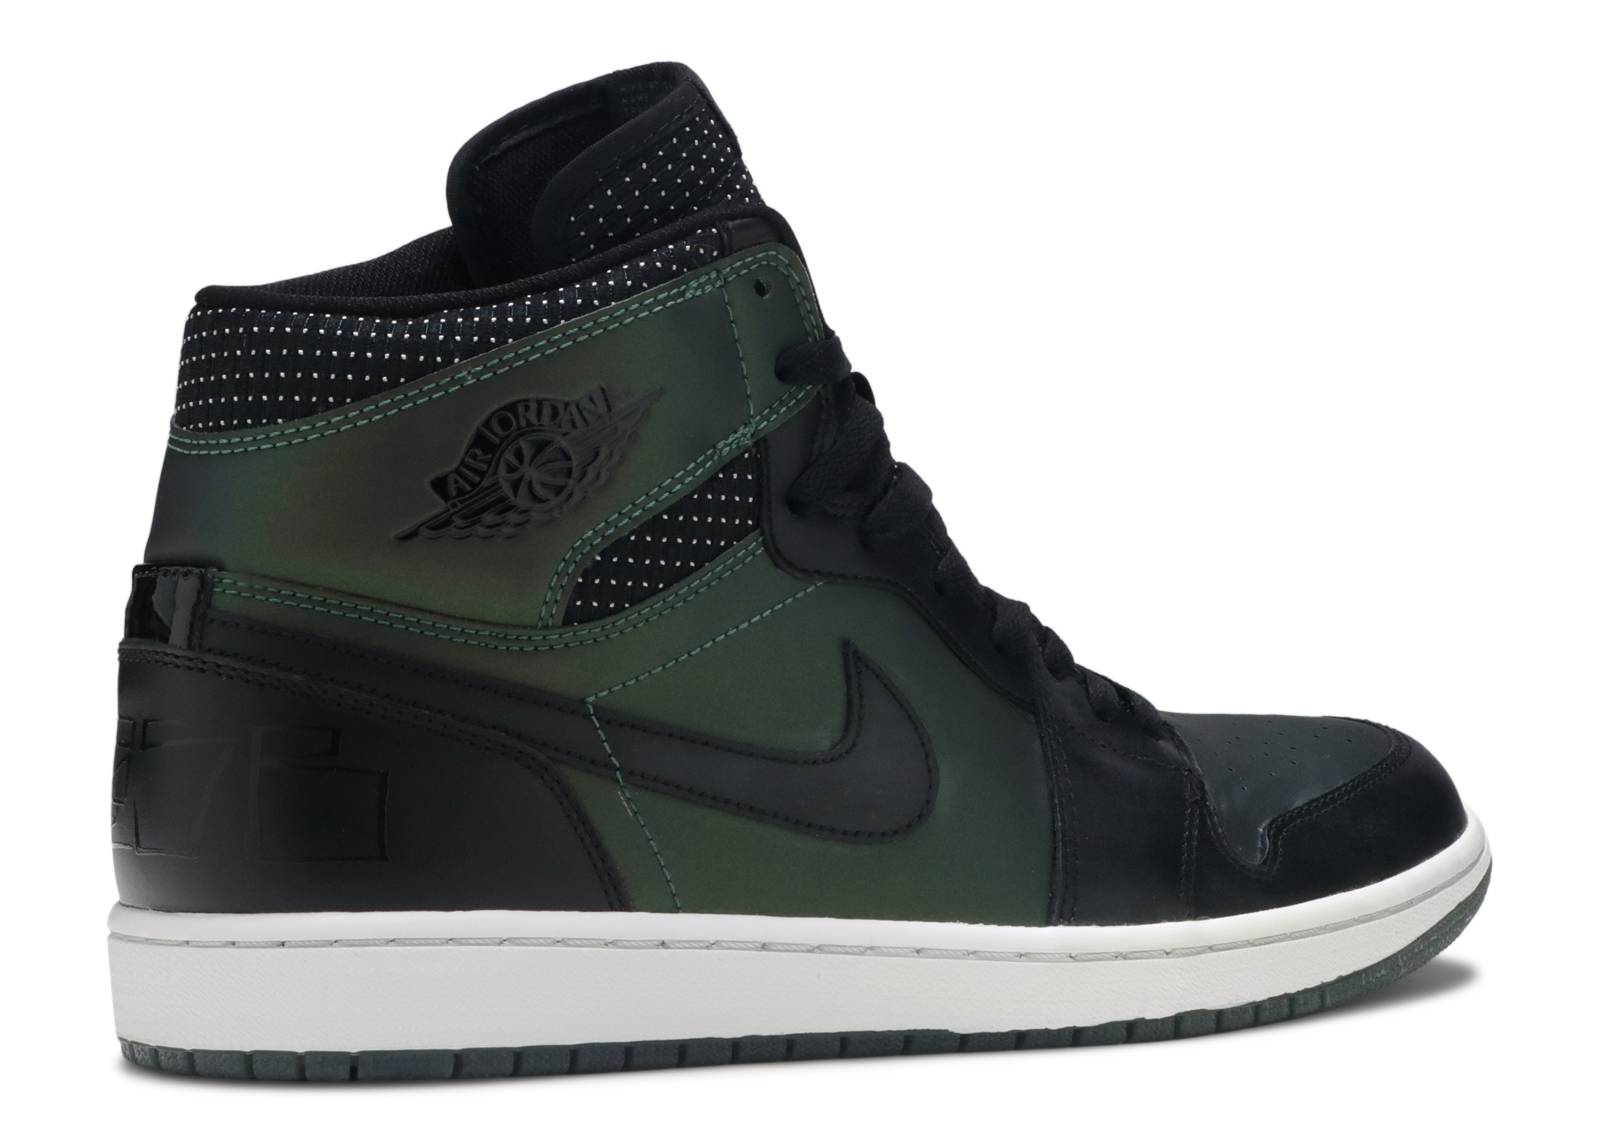 Nike Jordan 1 ipertensioneonline.it